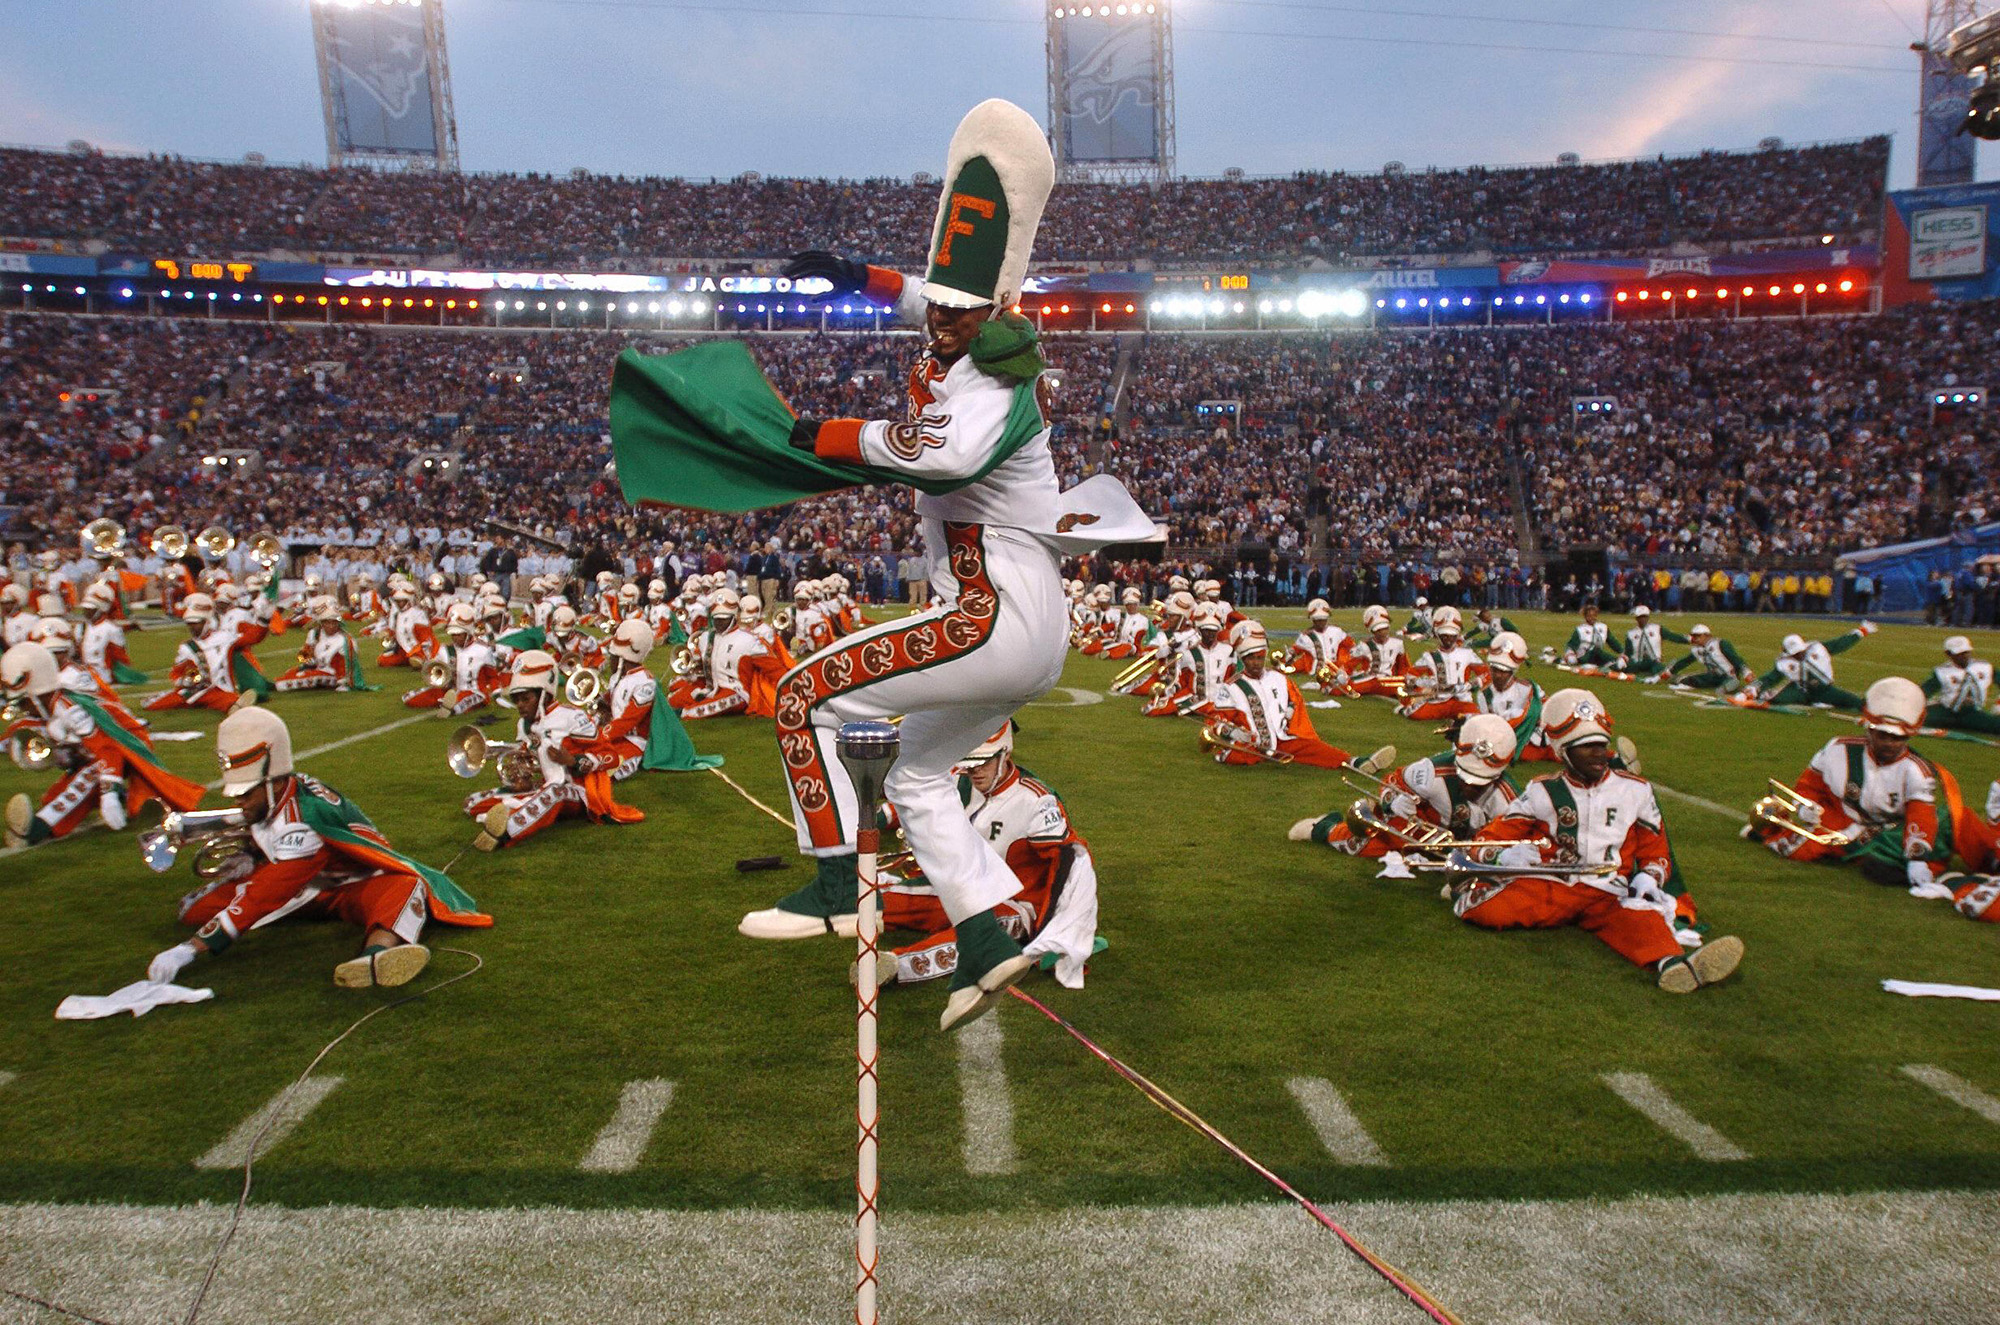 JACKSONVILLE, UNITED STATES:  Drum Major for Florida A&M University marching band performs during the Super Bowl pre-game show 06 February 2005 at Alltel Stadium in Jacksonville.     AFP PHOTO/Roberto SCHMIDT  (Photo credit should read ROBERTO SCHMIDT/AFP/Getty Images)